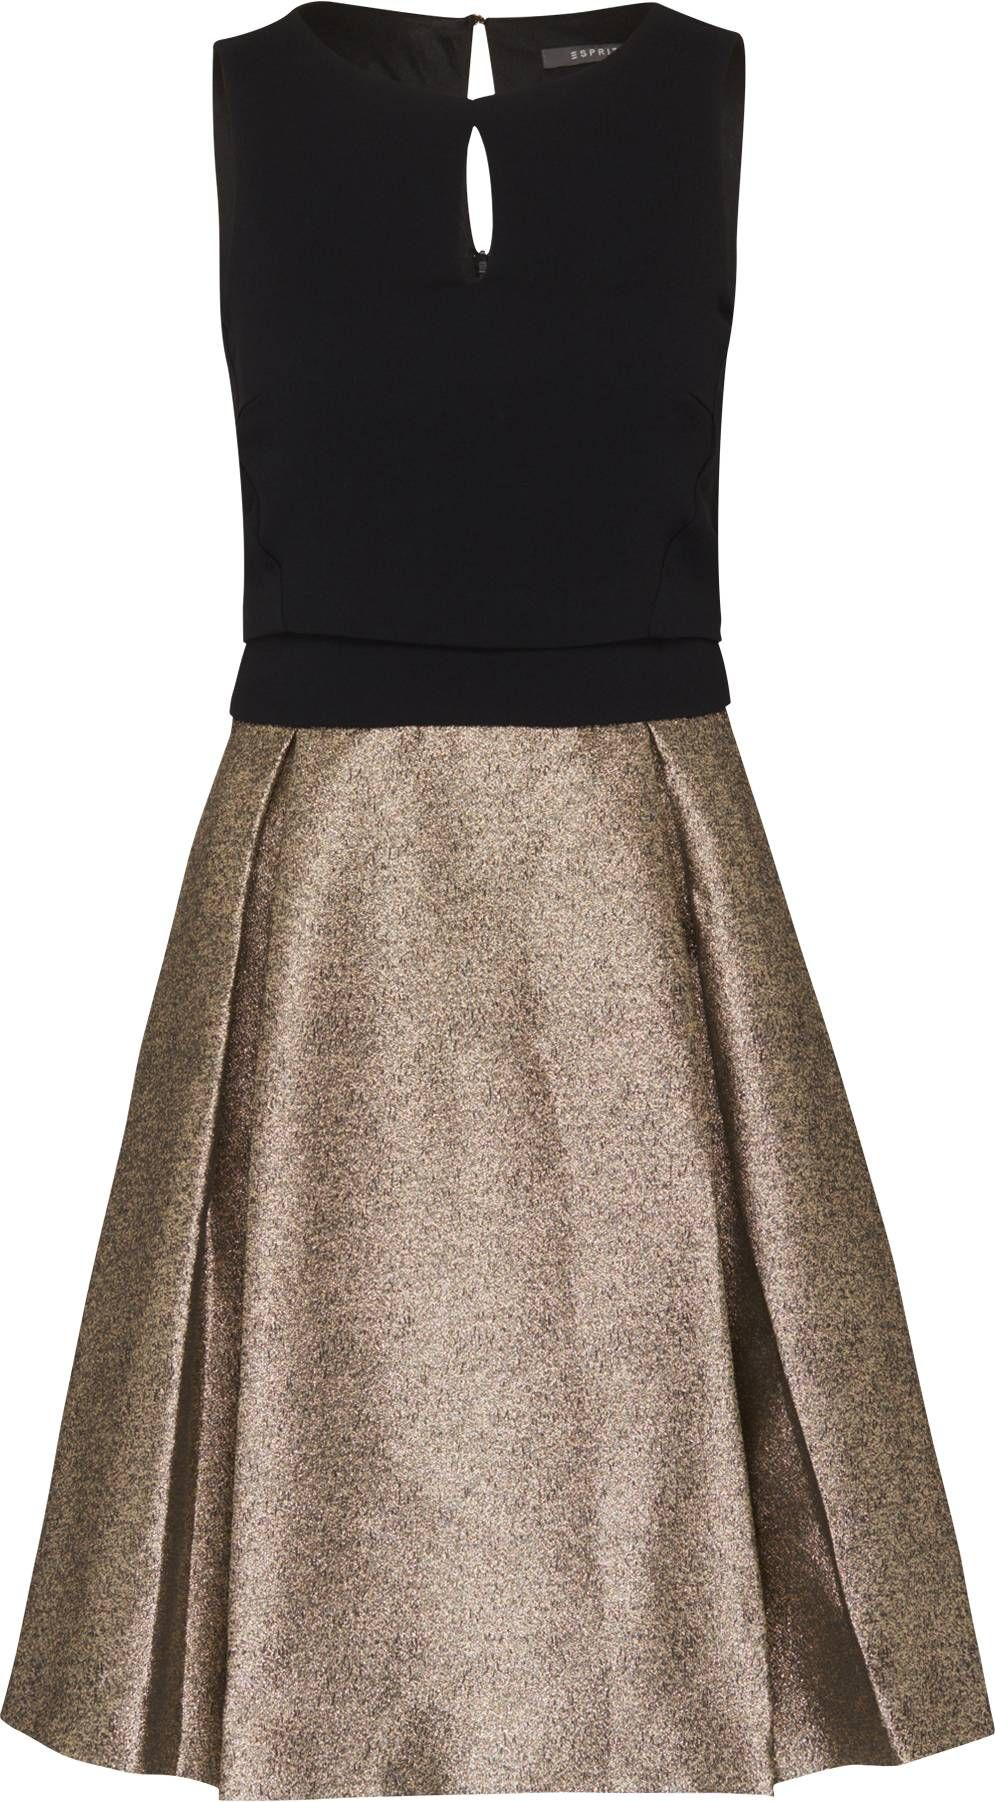 Kleid mit Glitzereffekt von Esprit Collection bei ABOUT YOU